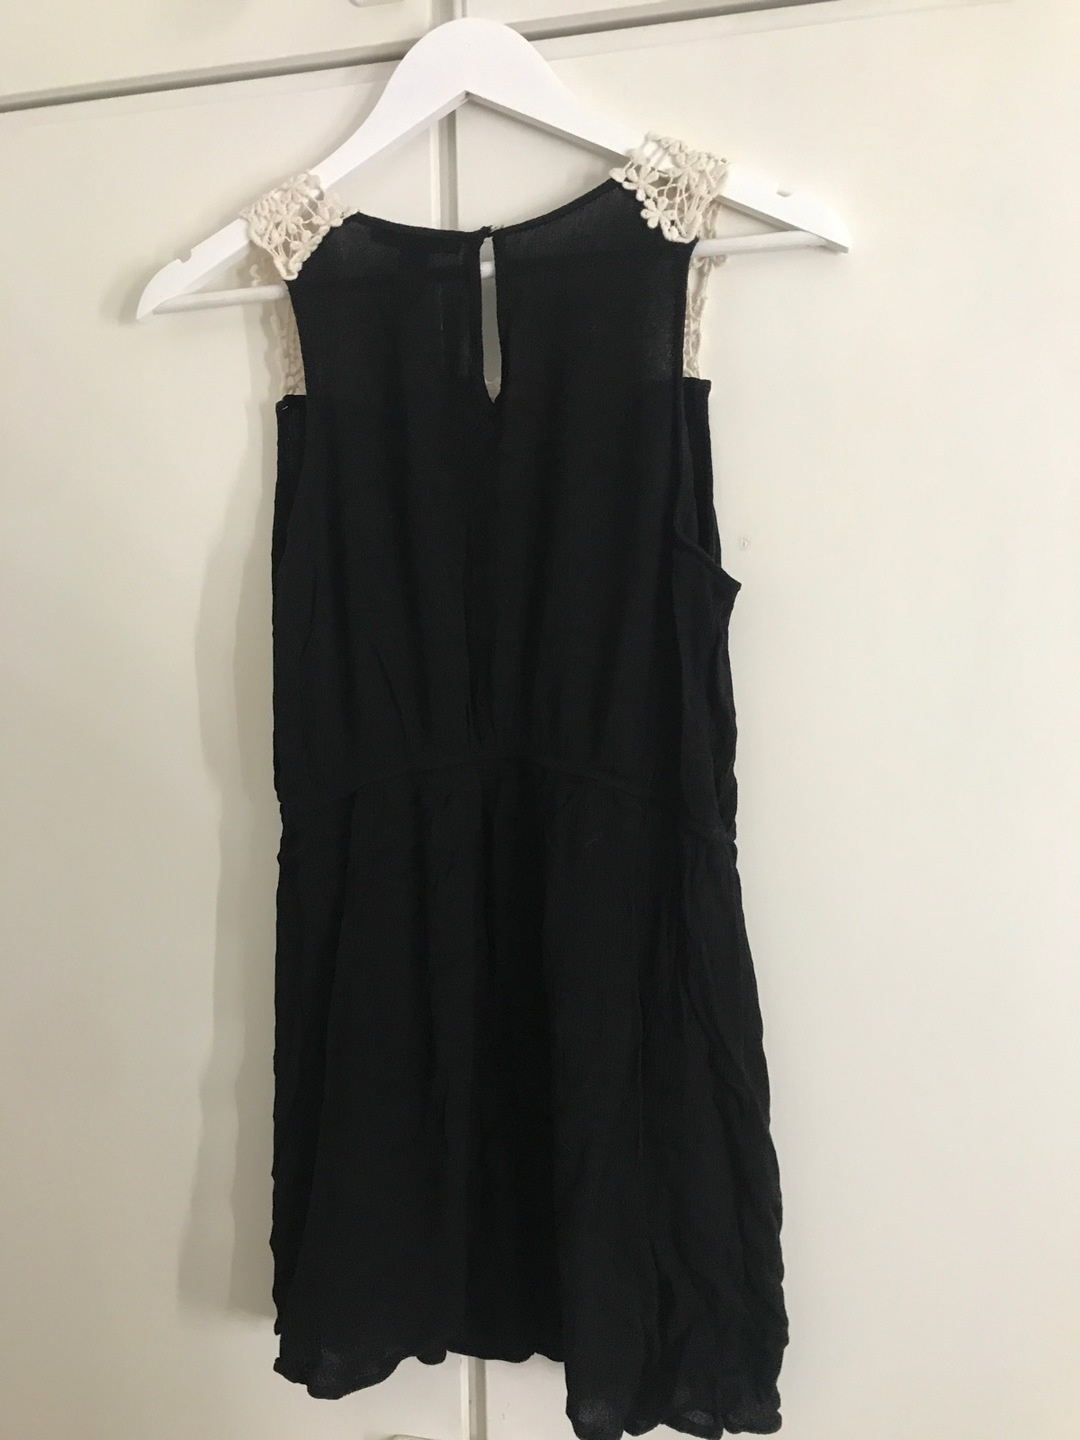 Women's dresses - FOREVER 21 photo 2